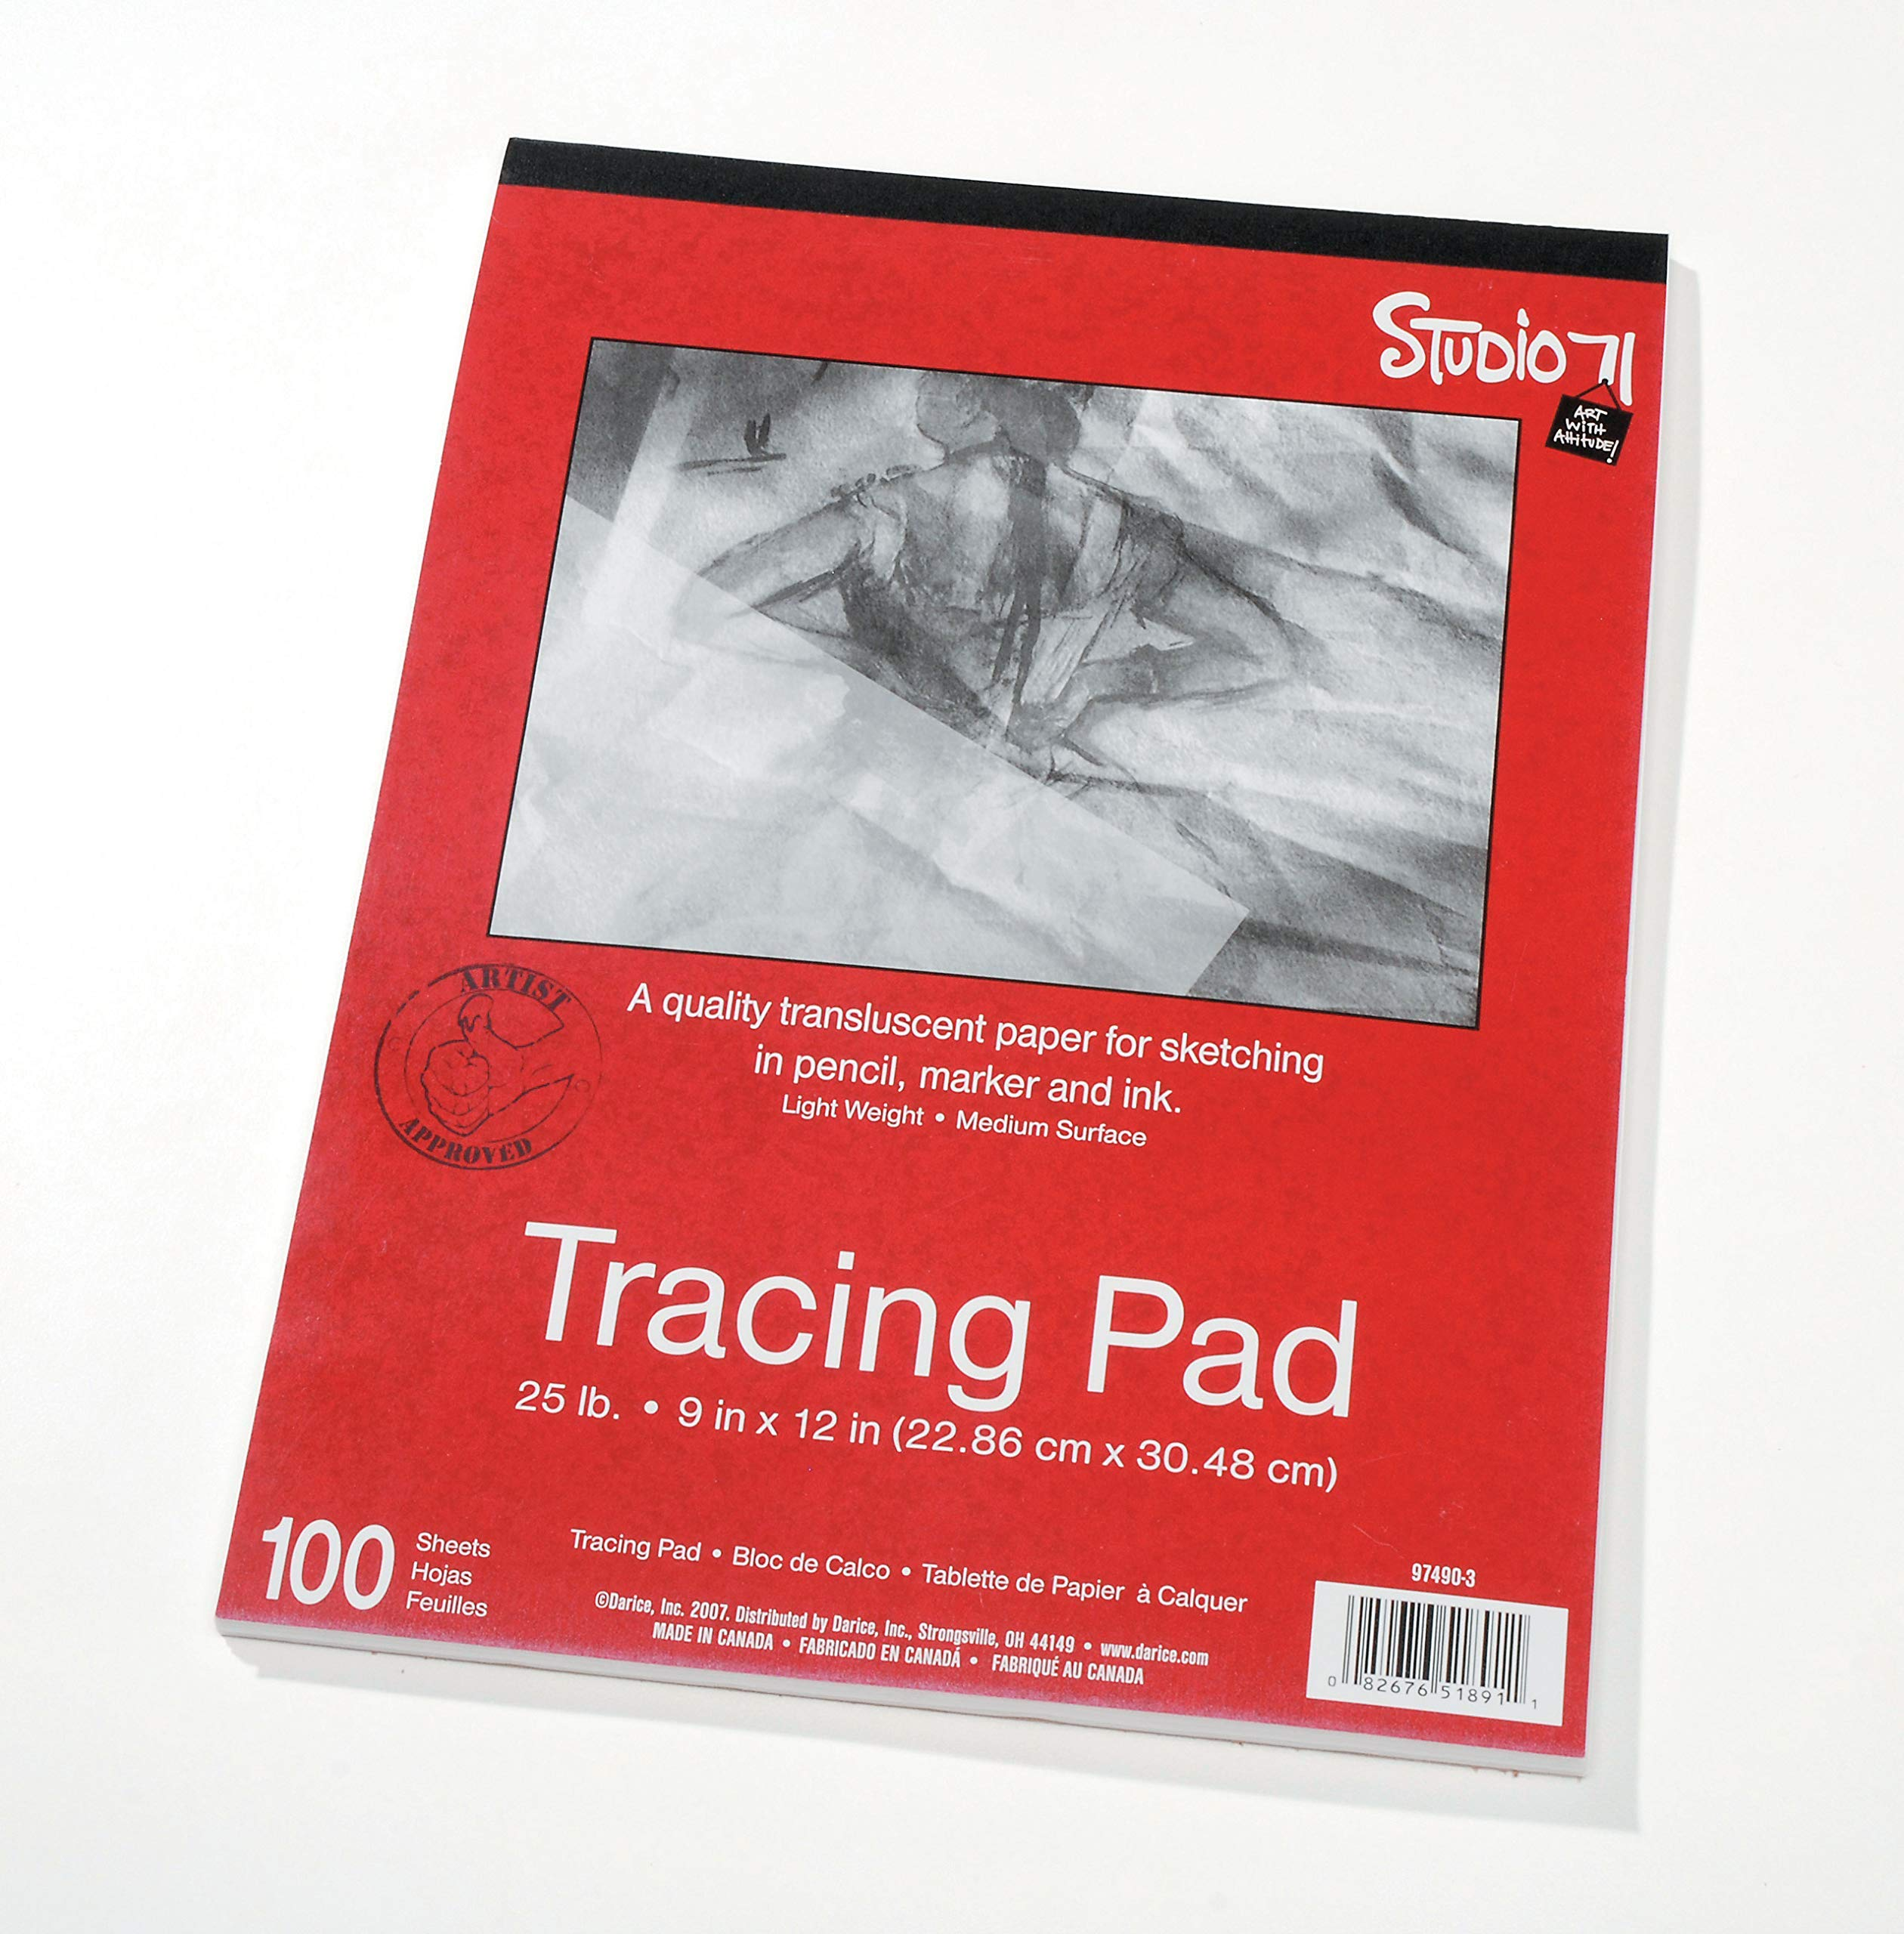 9''x12'' Artist's Tracing Paper, 100 Sheets - Translucent Tracing Paper for Pencil, Marker and Ink, Lightweight, Medium Surface (97490-3) - 10-Pack by Darice